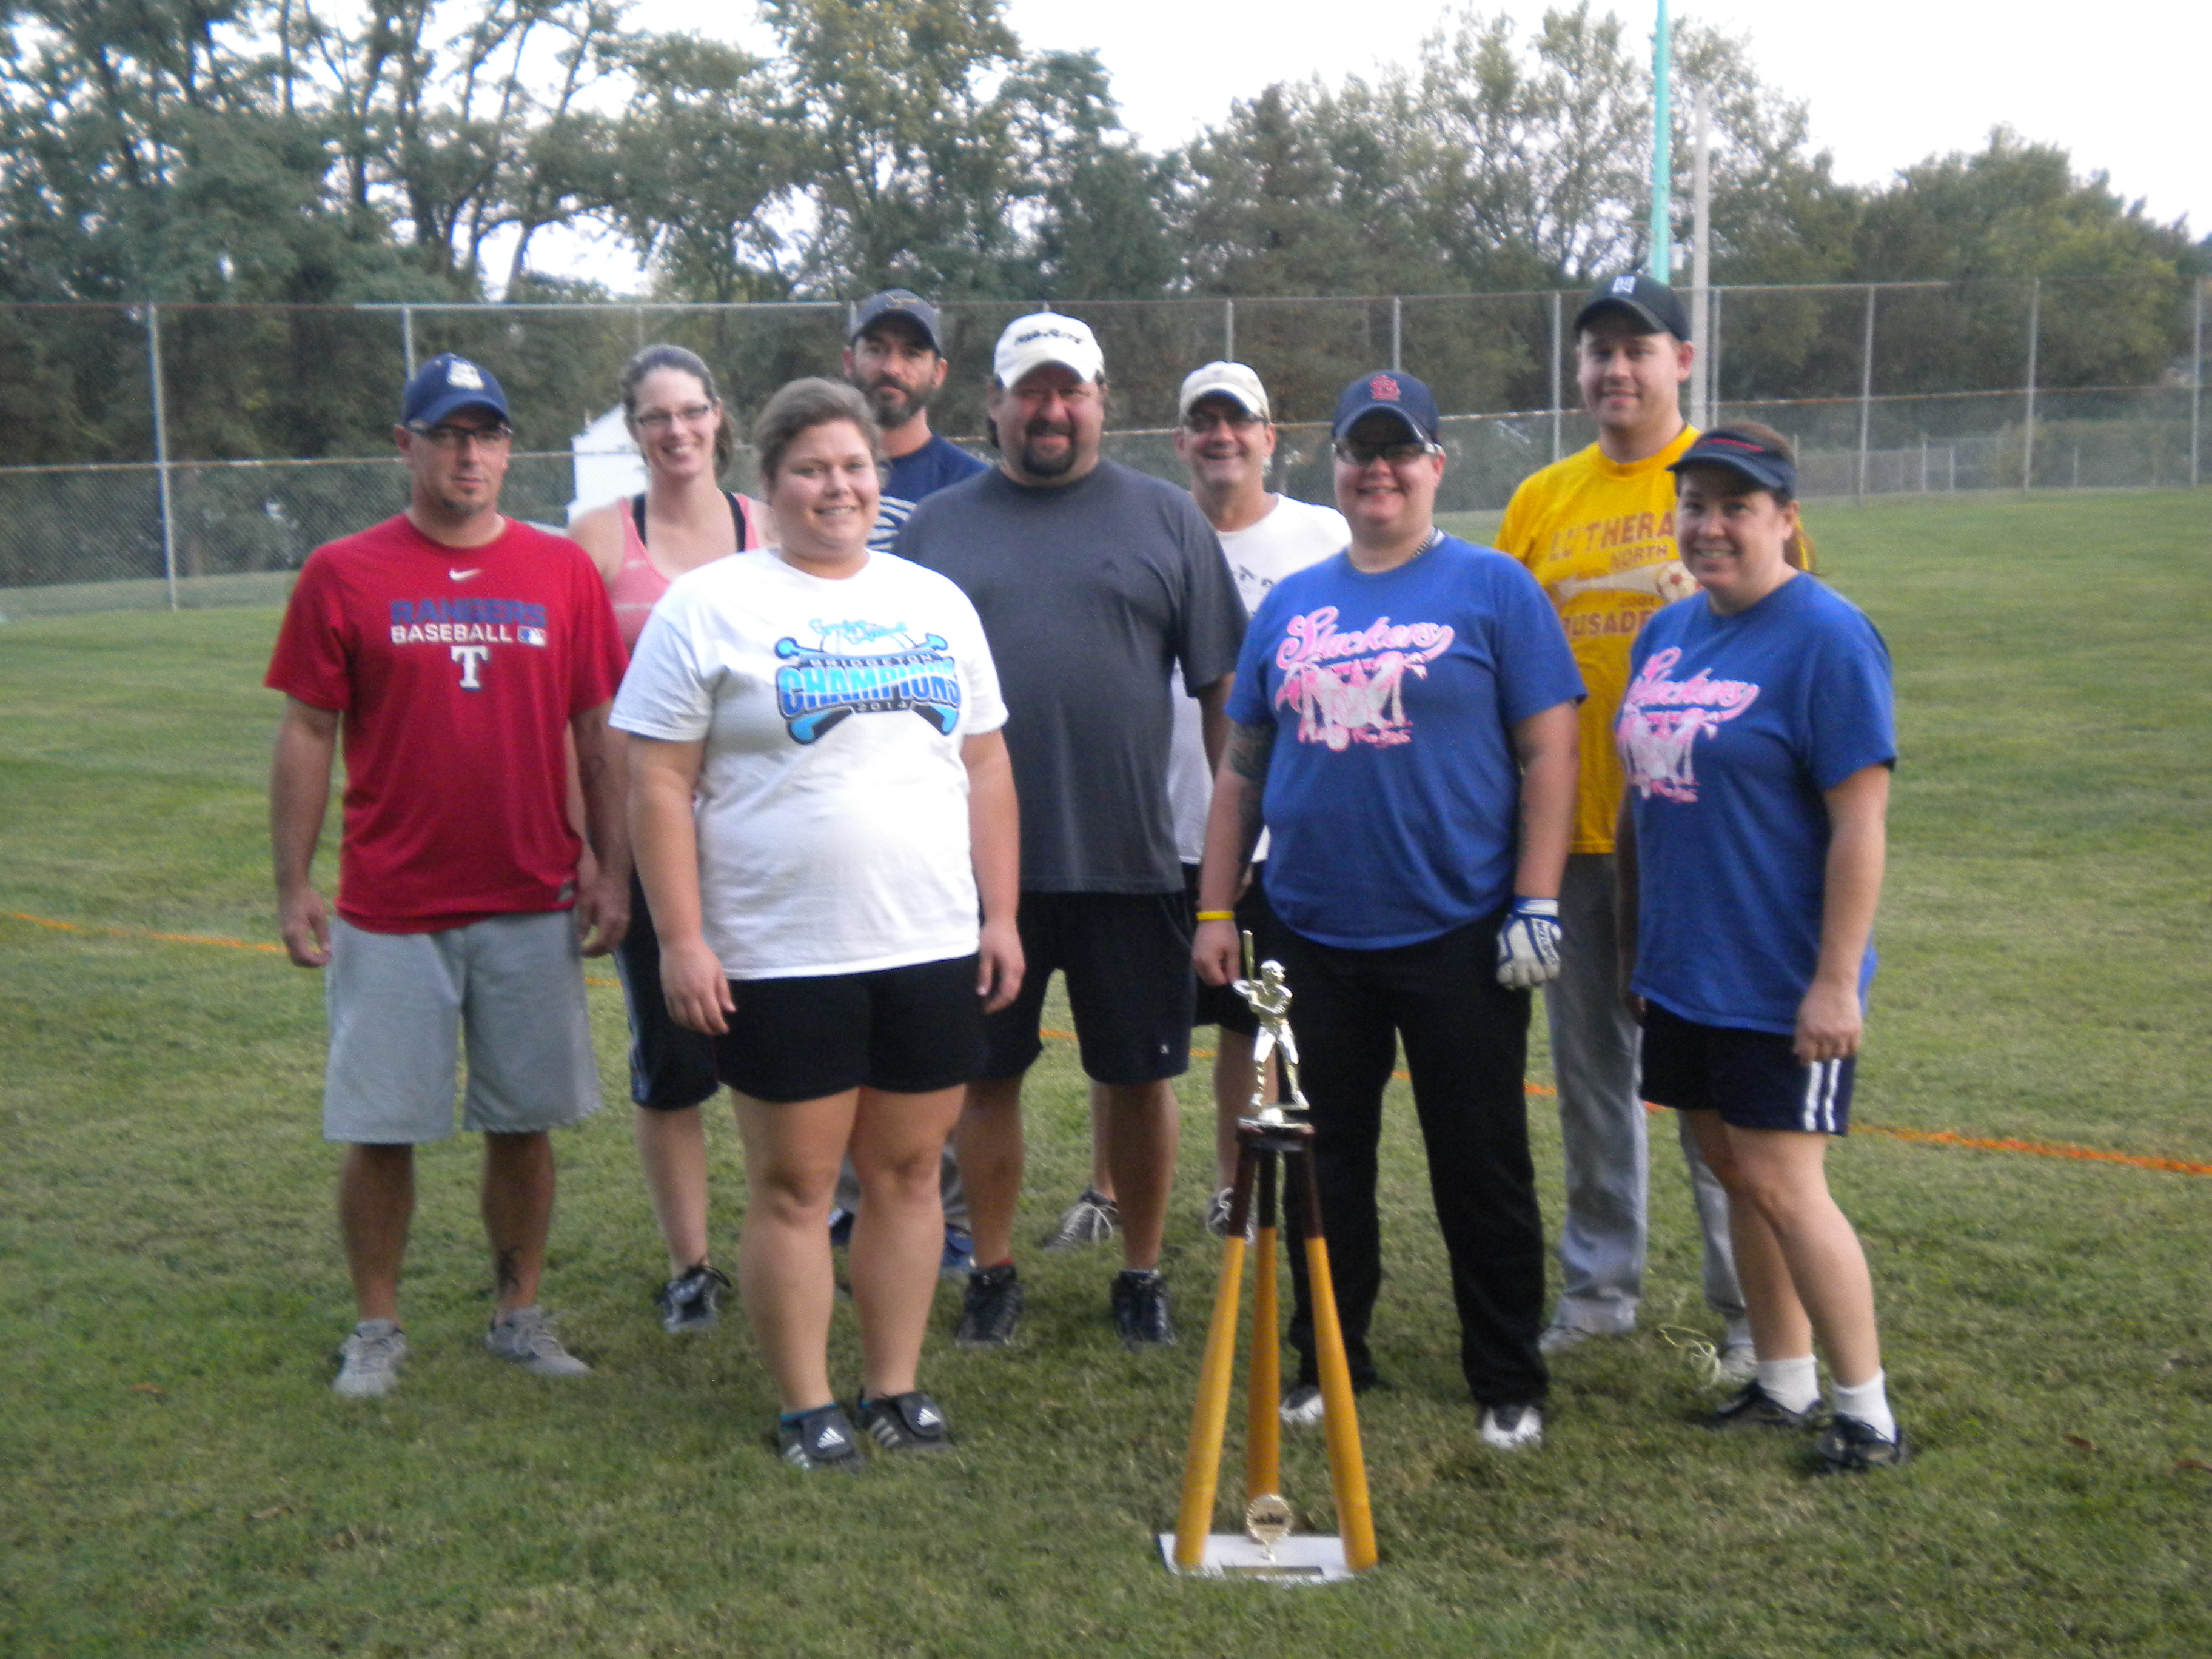 Sp/SM 2014 League Champ Team - Slackers